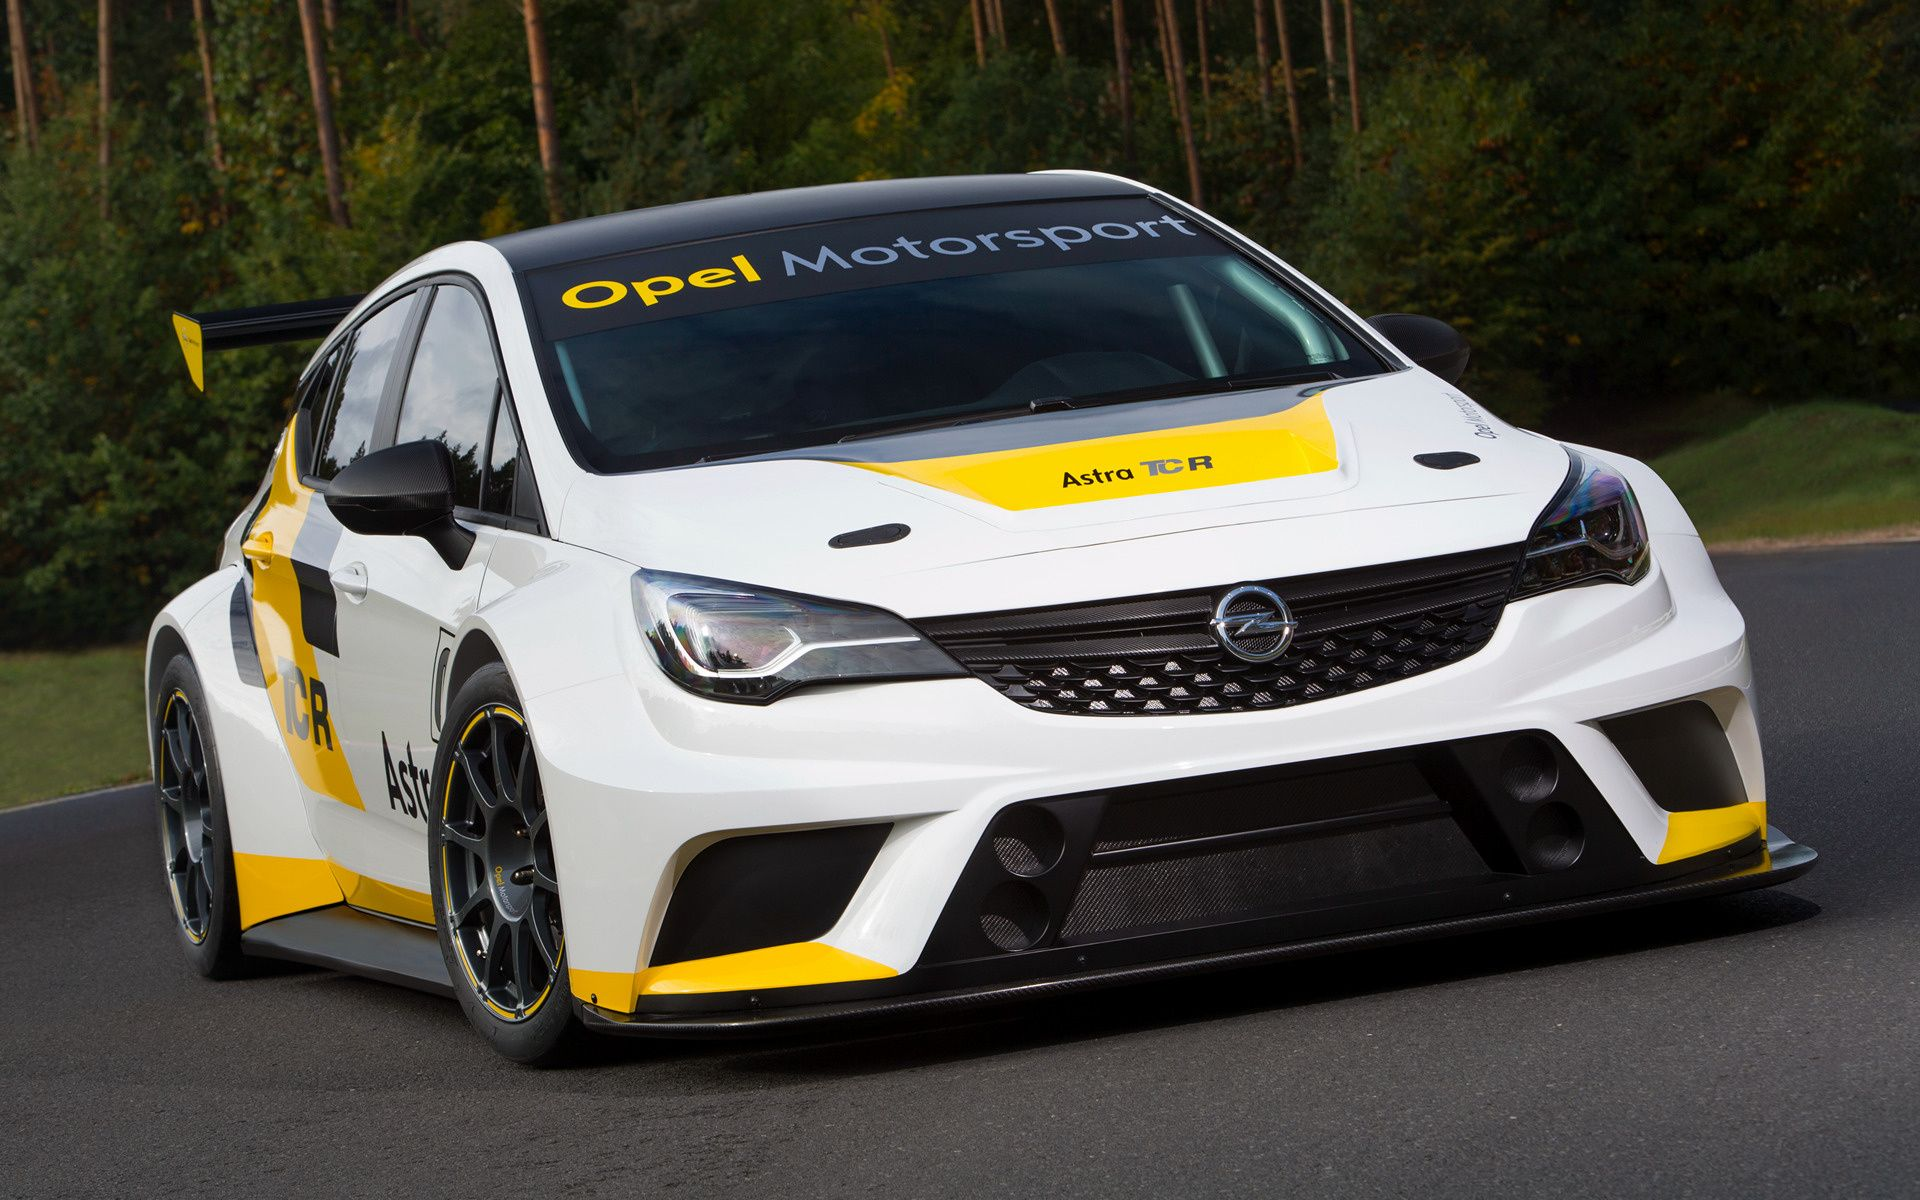 Opel Astra TCR (2016) Wallpapers and HD Images - Car Pixel